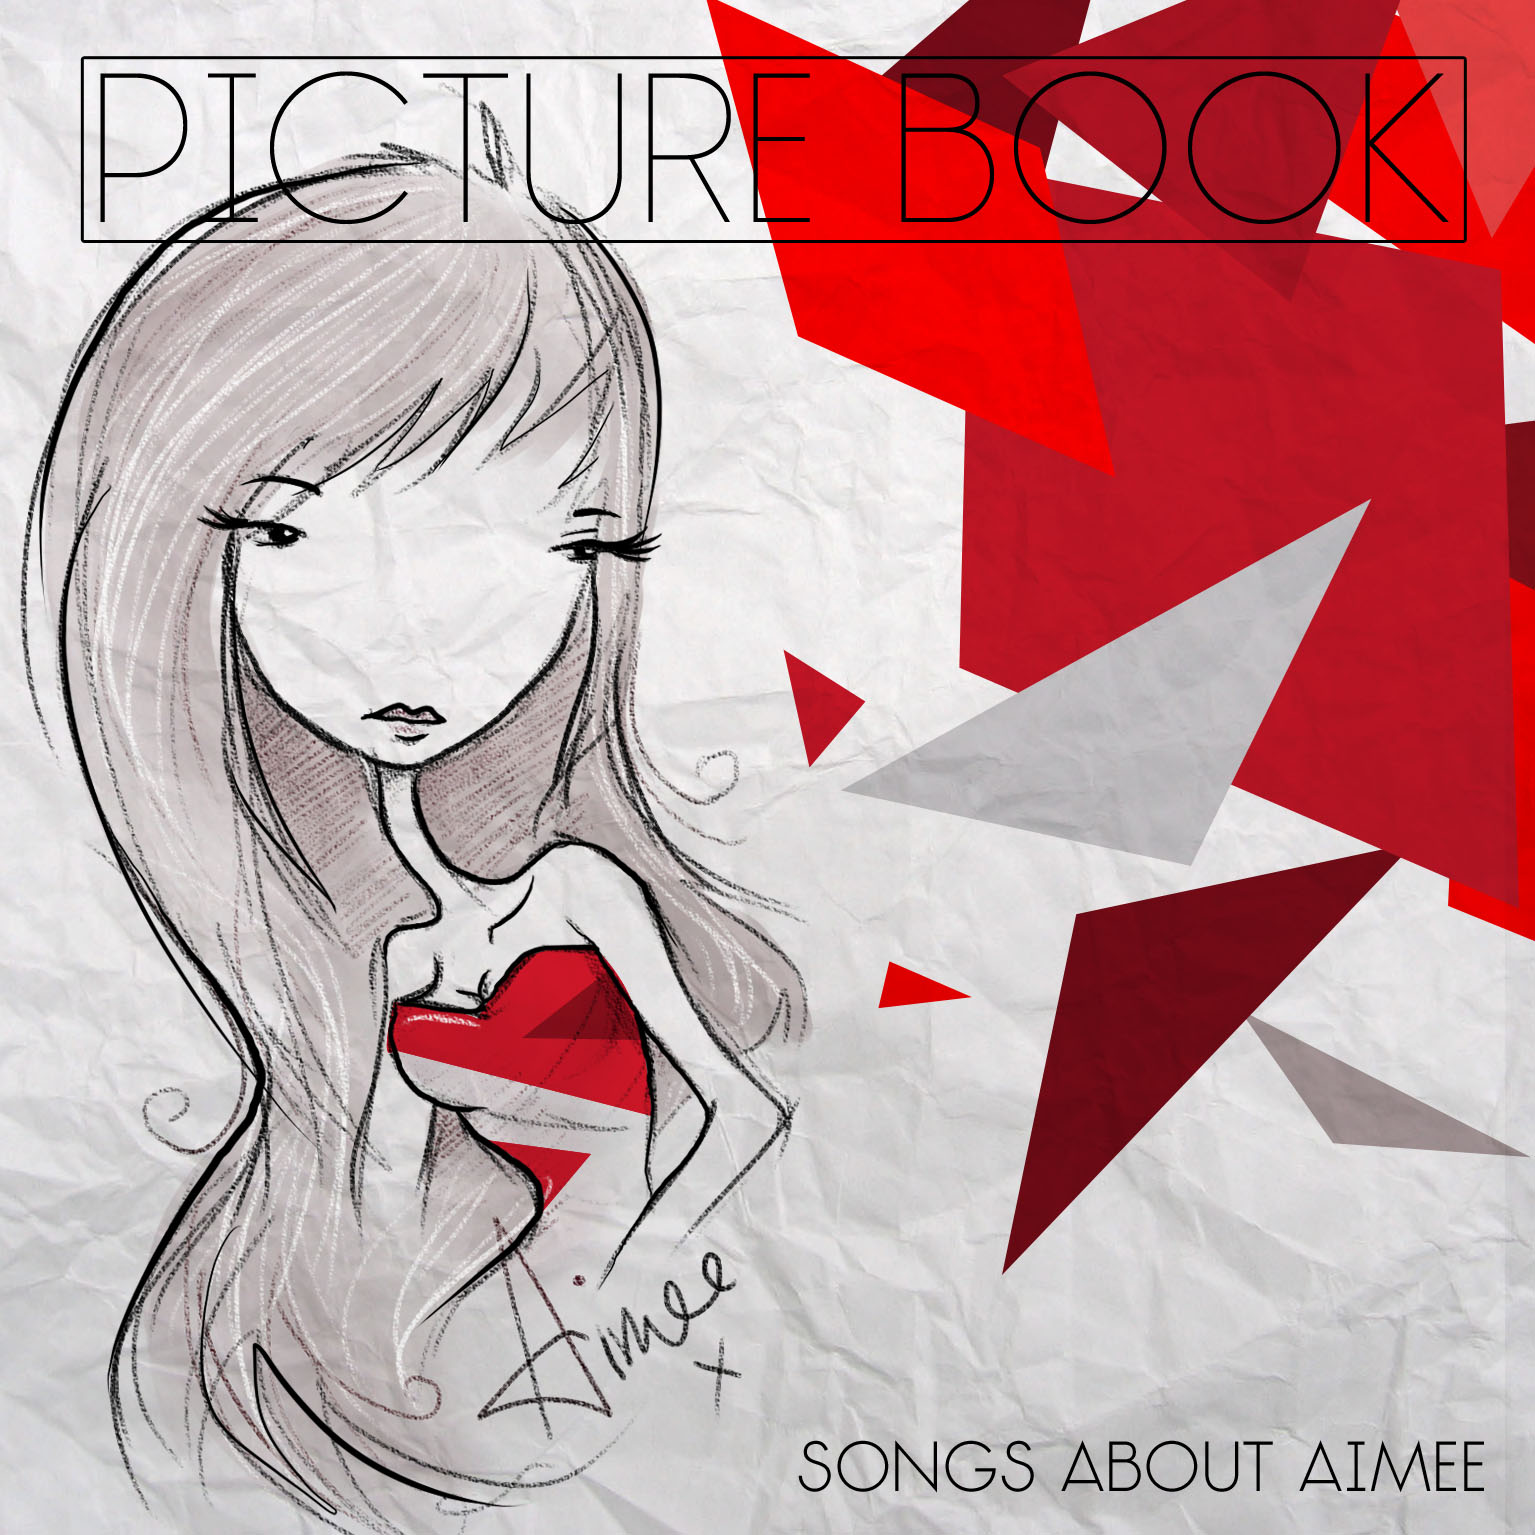 Picture Book – Songs About Aimee EP